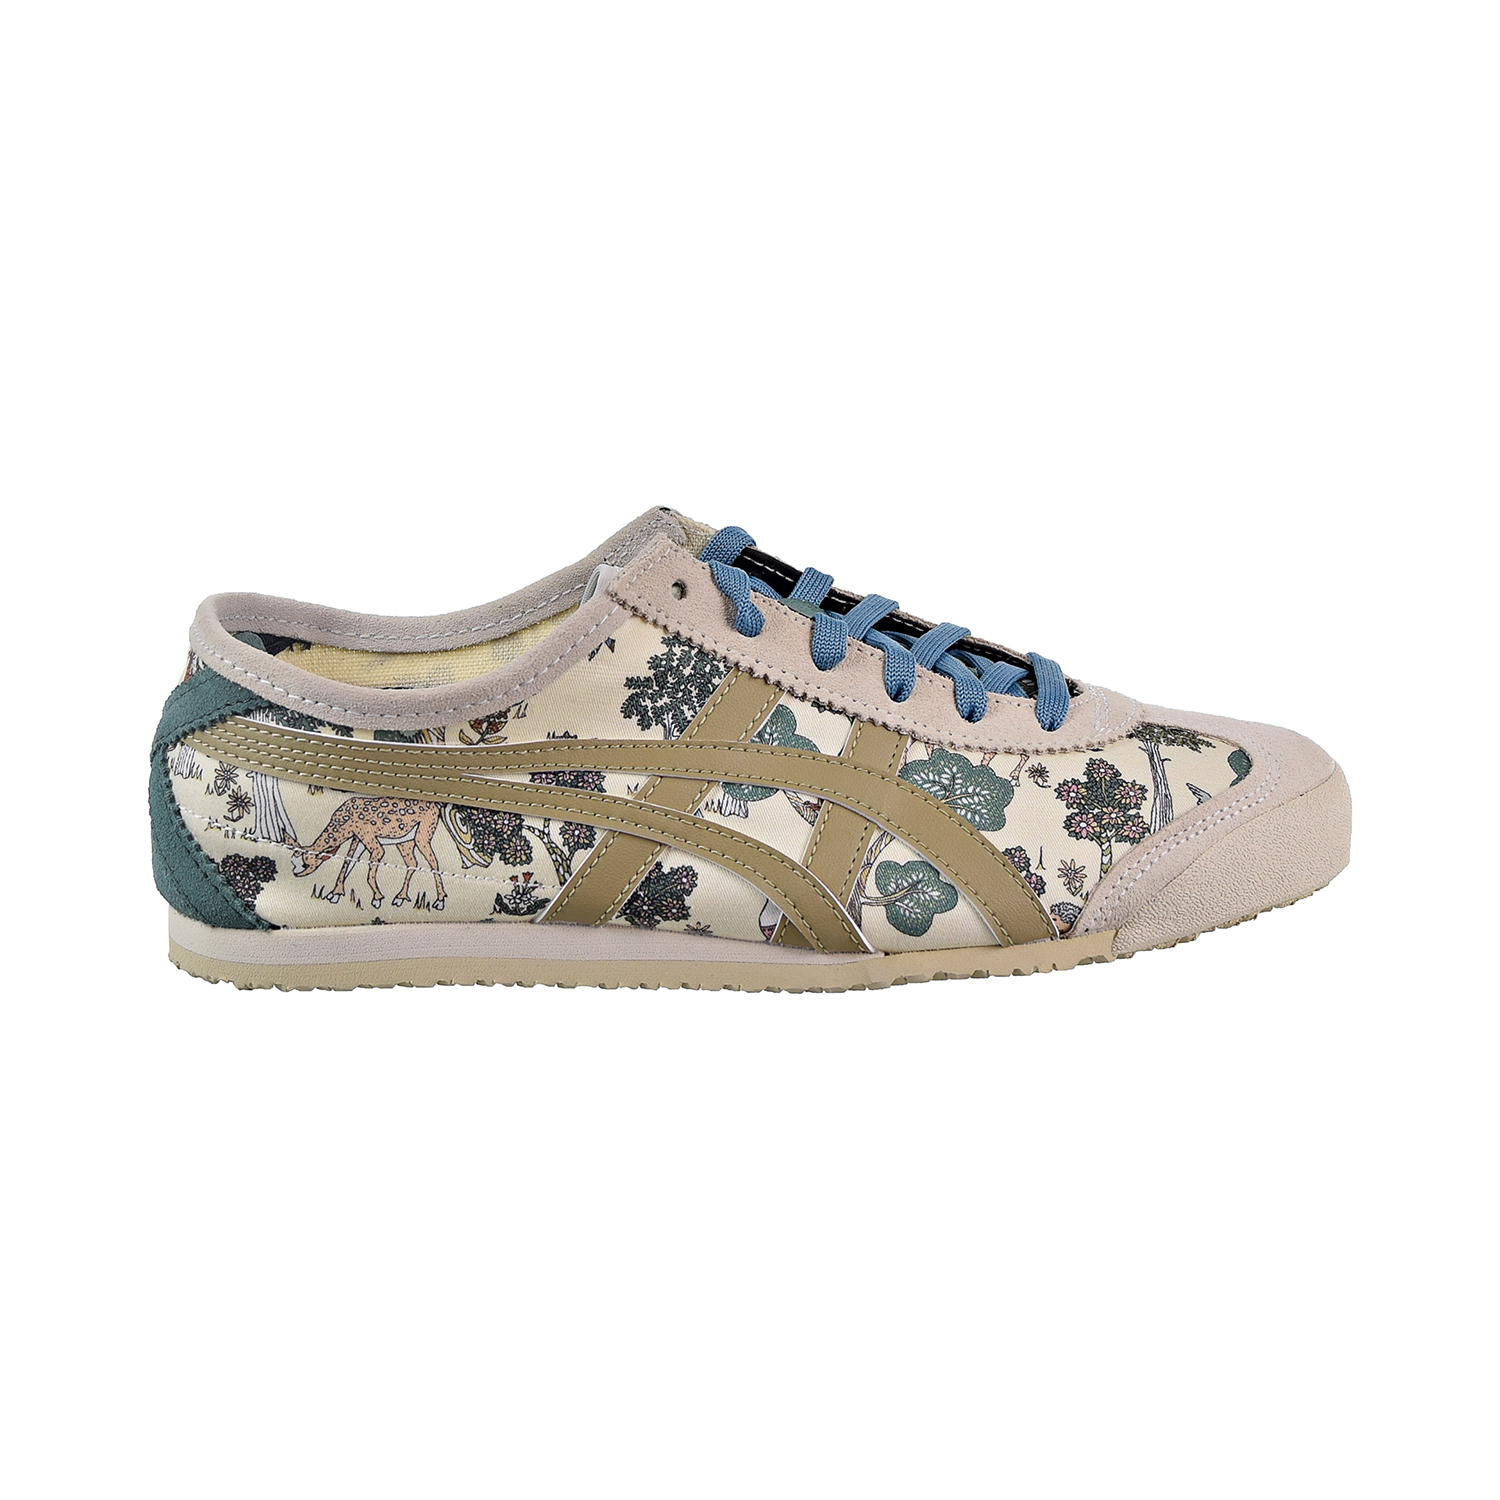 purchase cheap 6a585 c2a86 Details about Onitsuka Tiger Mexico 66 Women's Shoes Oatmeal/Safari Khaki  1182A016-250